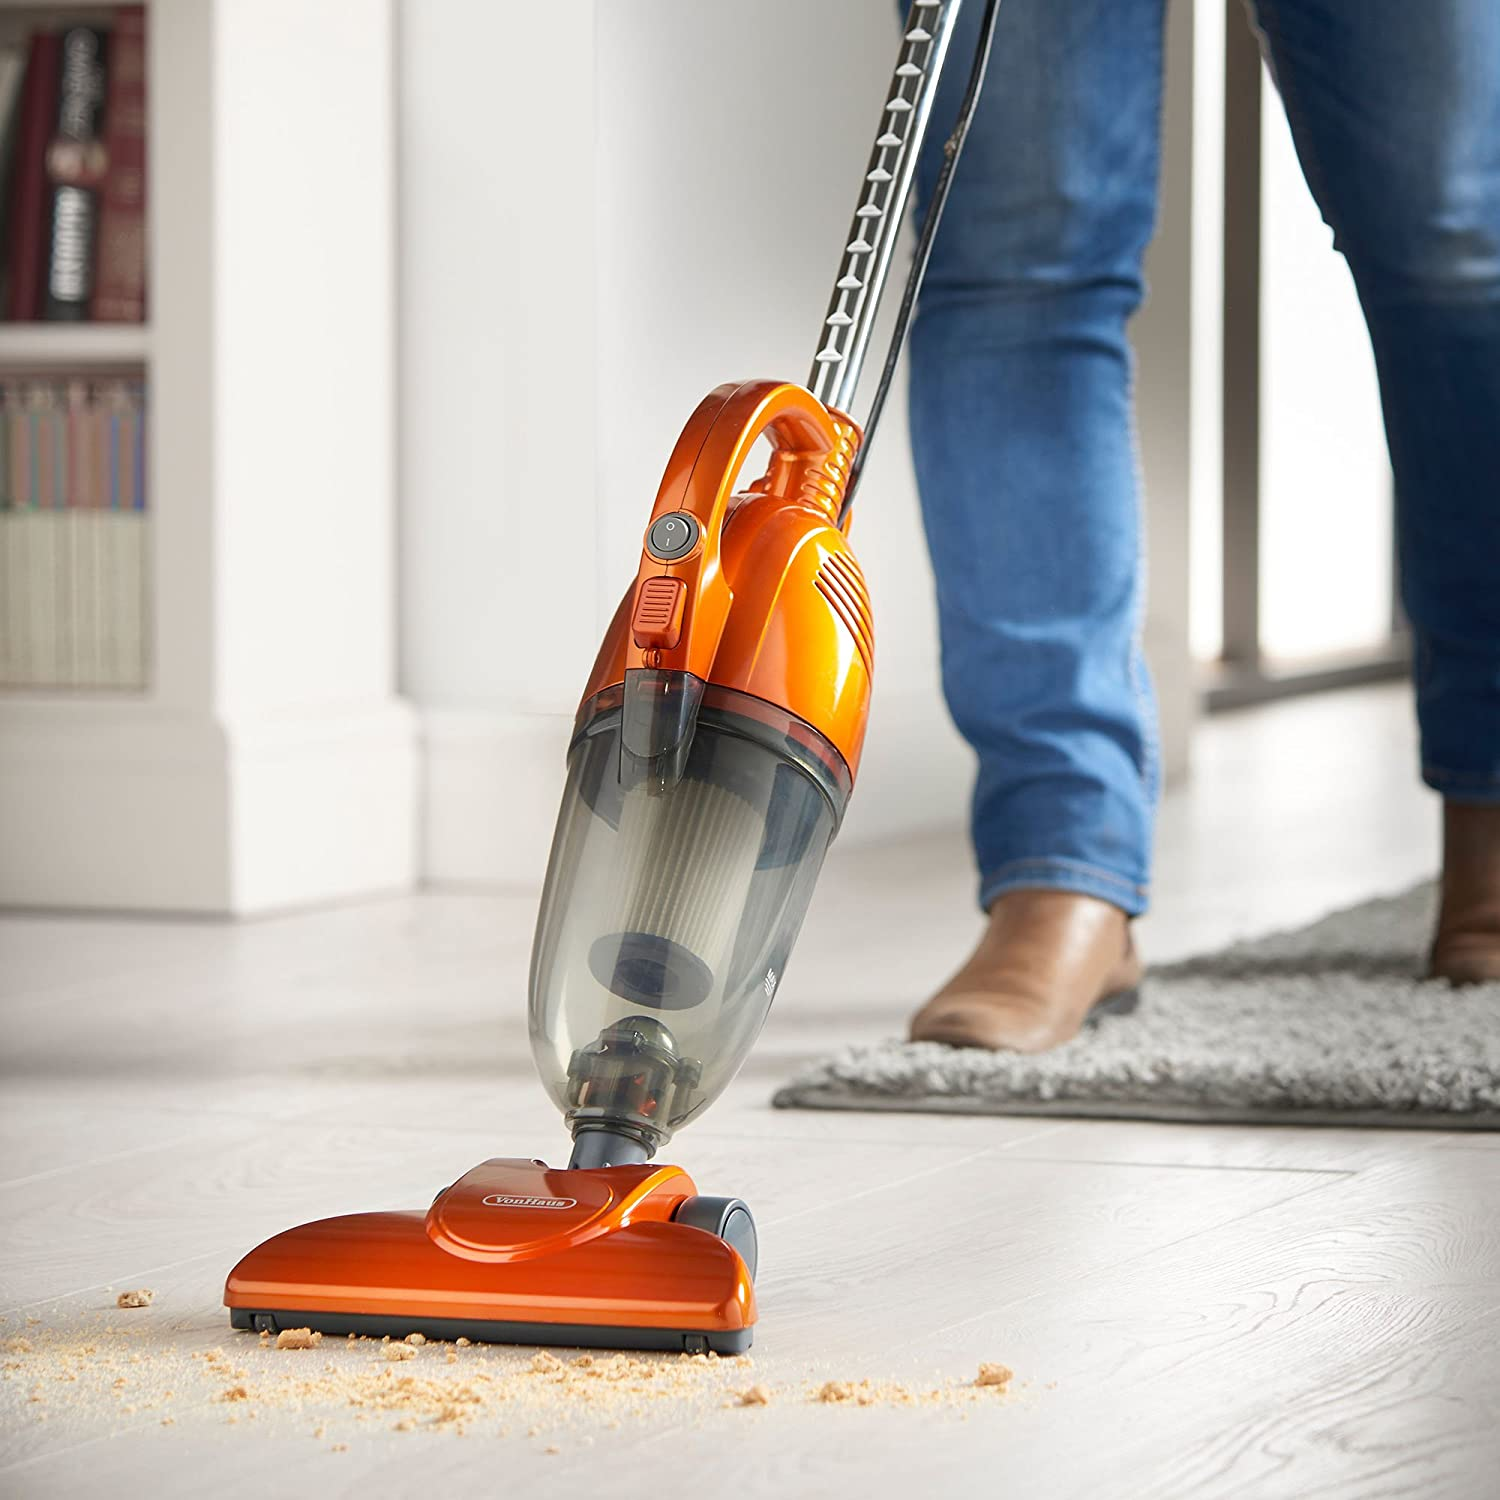 VonHaus 600W 2-in-1 Corded Vacuum Cleaner